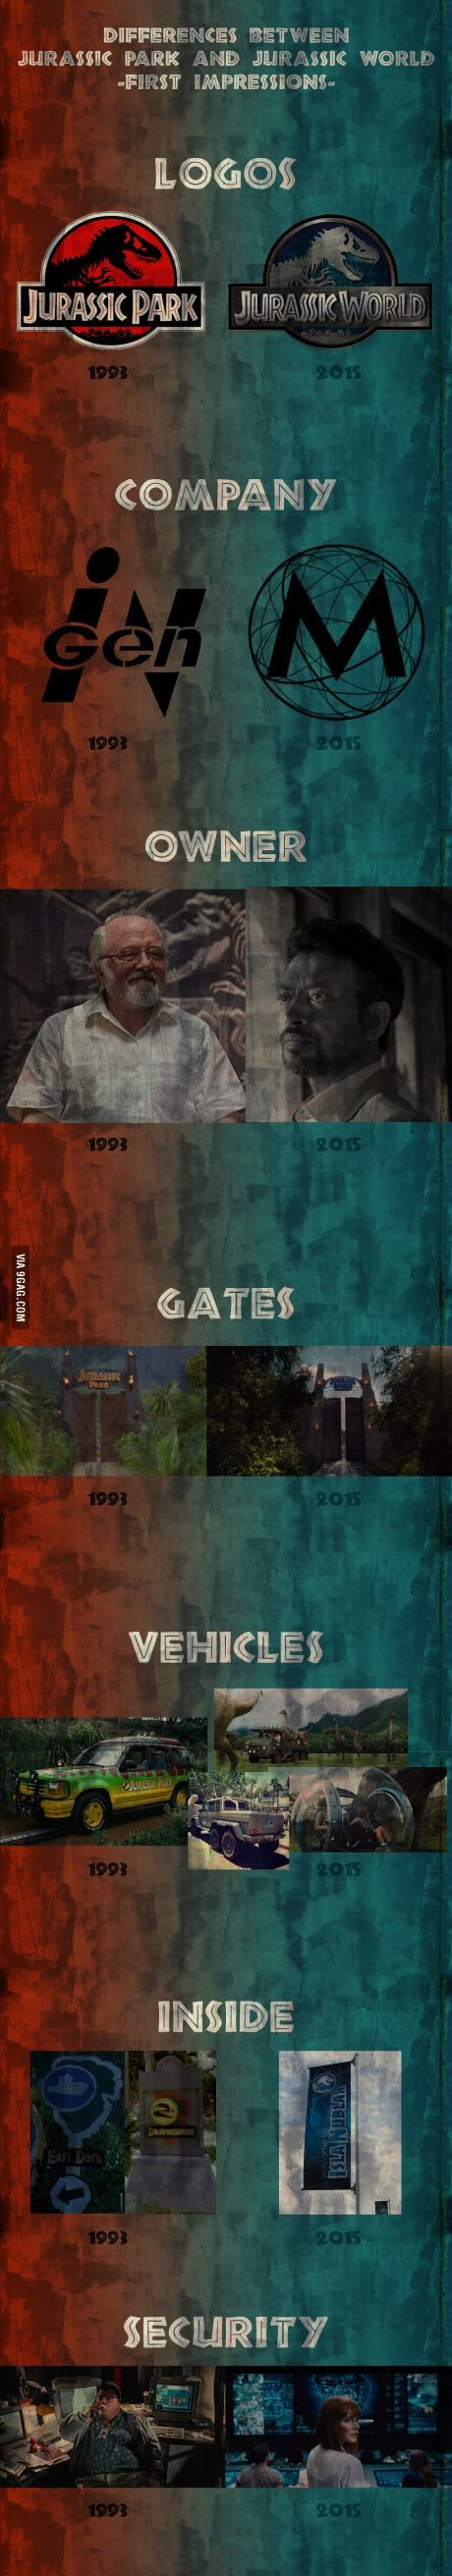 Jurassic Park / Jurassic World. I cannot wait for this movie!! more on http://odestory.com/